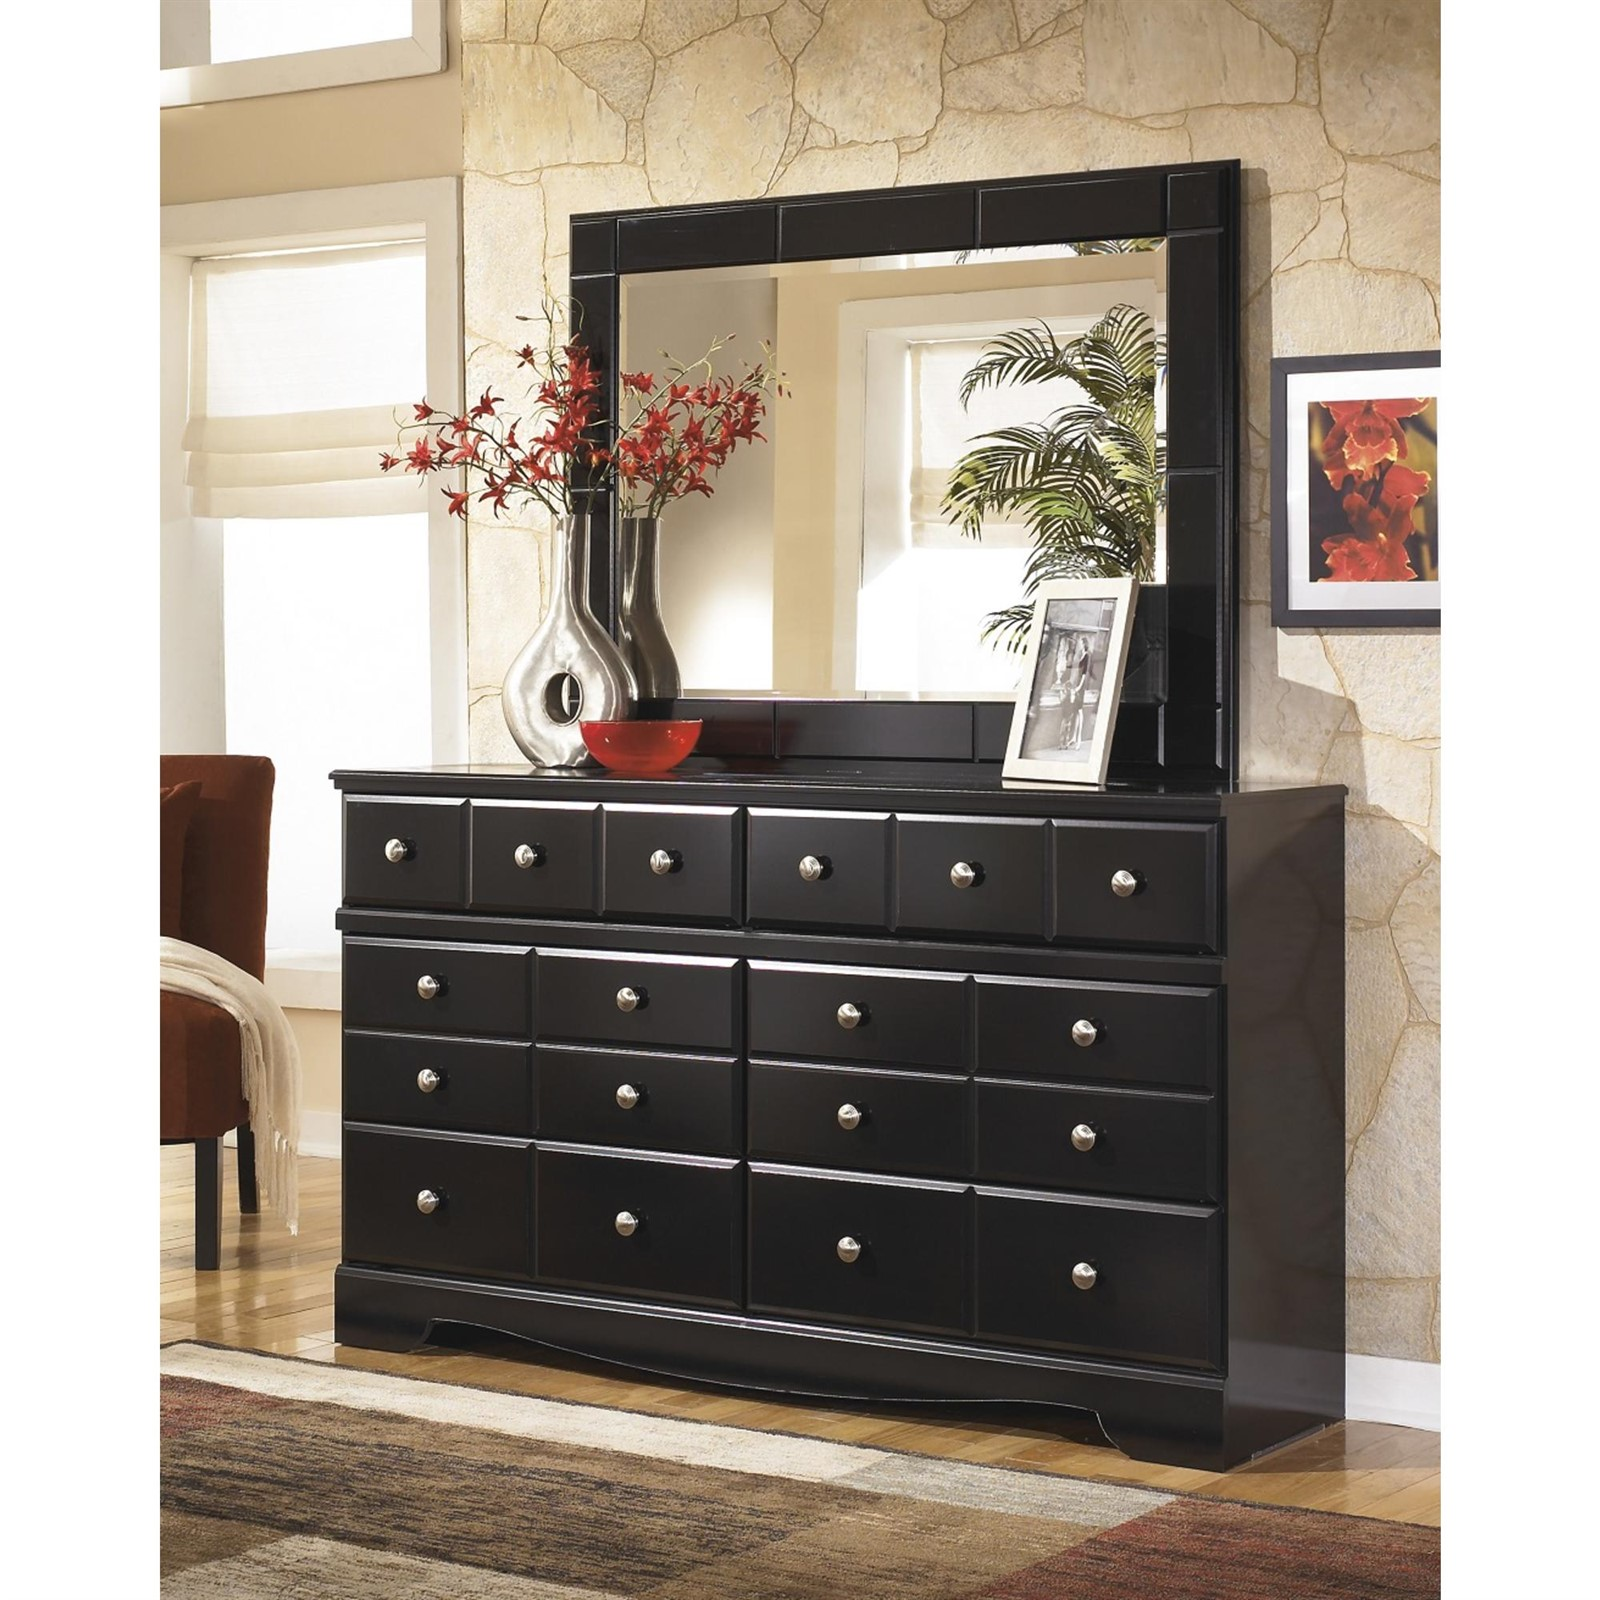 Shay Almost Black Dresser with Mirror